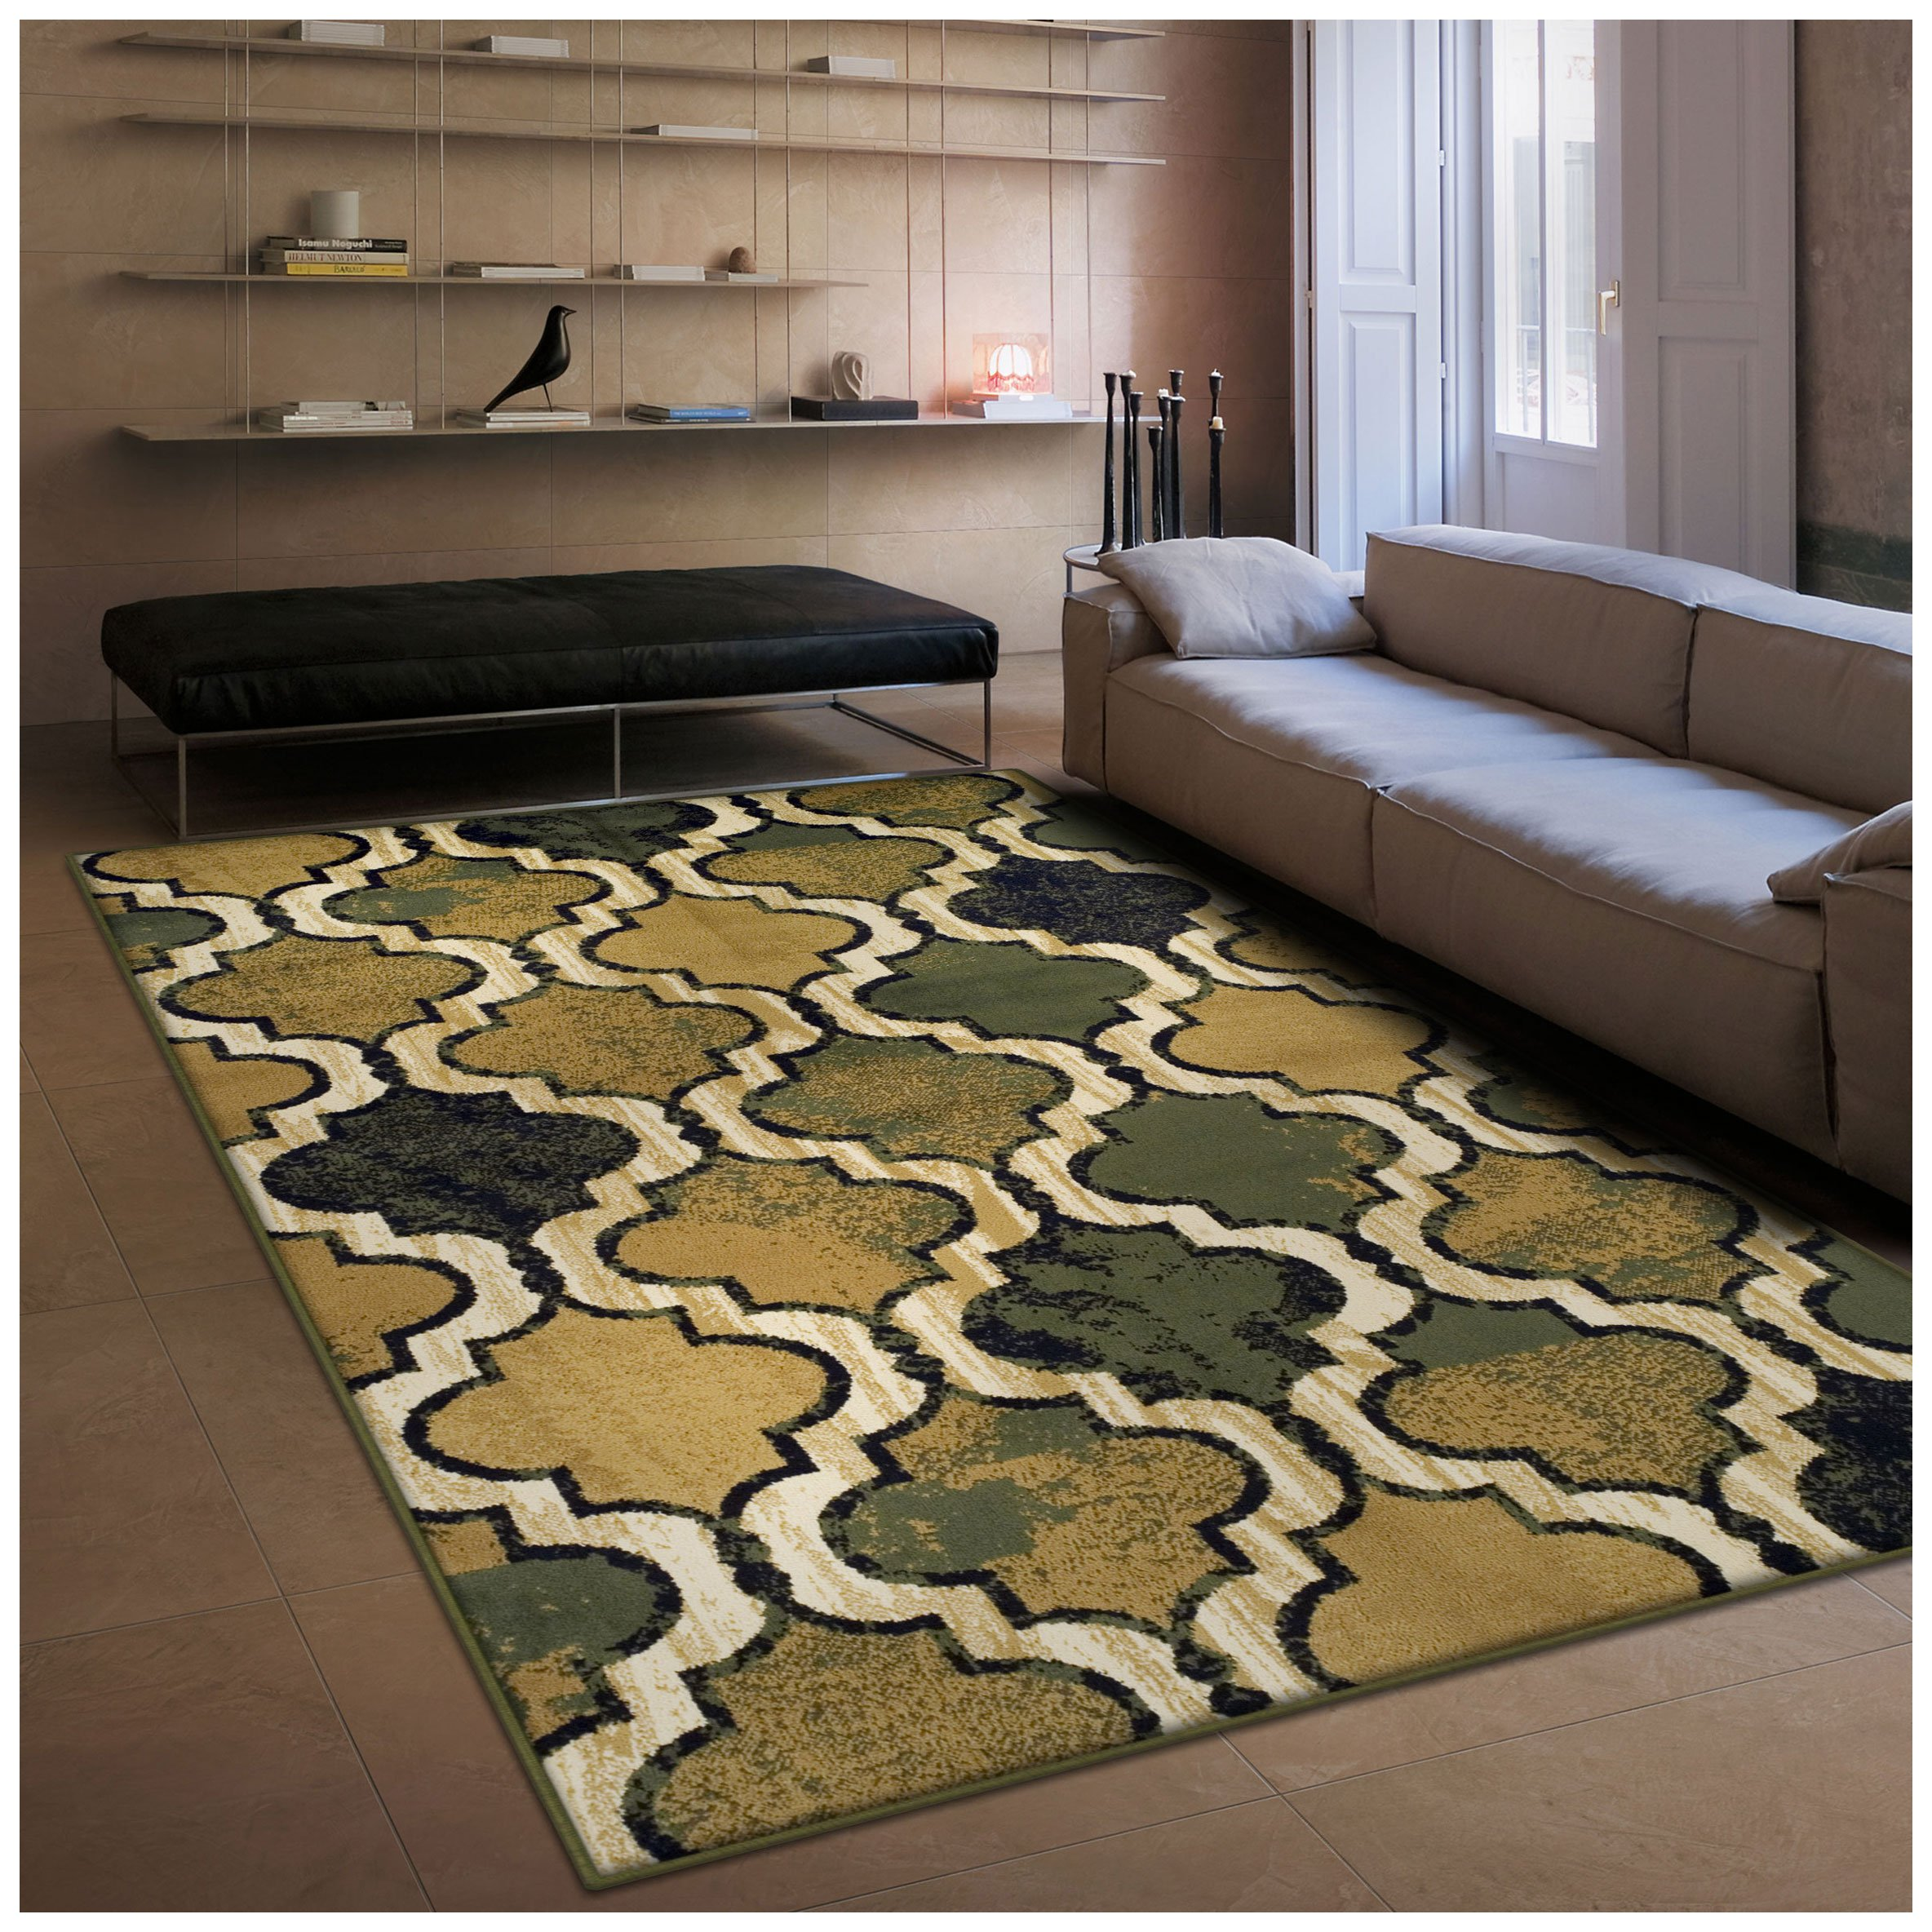 Amazon.com: Superior Modern Viking Collection Area Rug, 10mm Pile ...